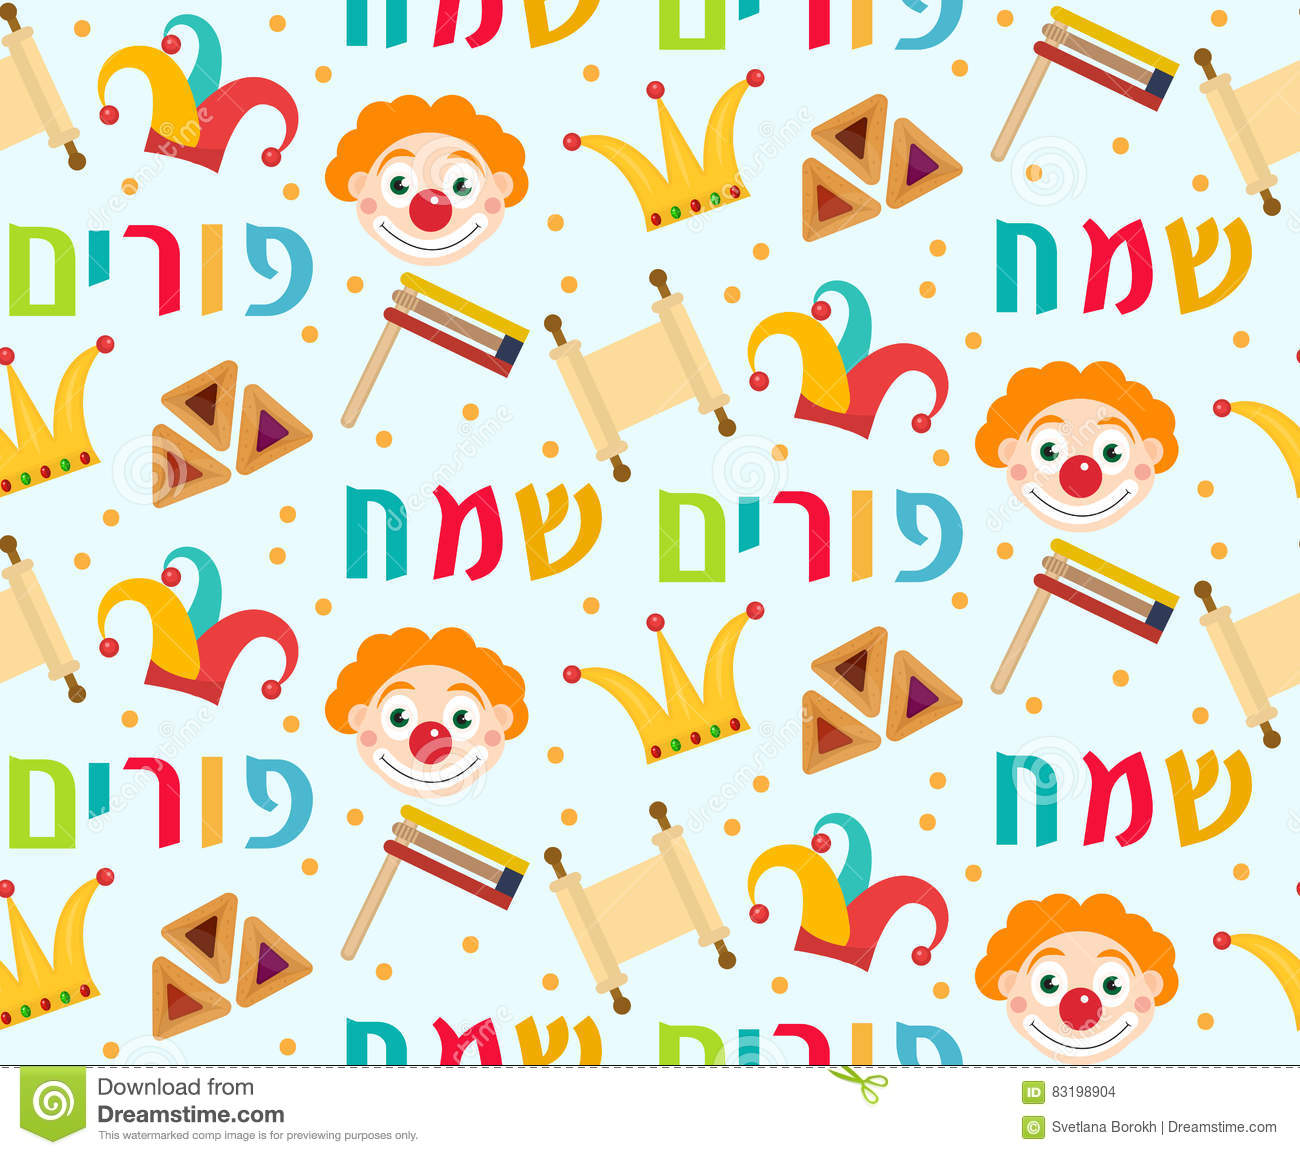 Purim seamless pattern with carnival elements. Happy Jewish festival, endless background, texture, wallpaper. Vector